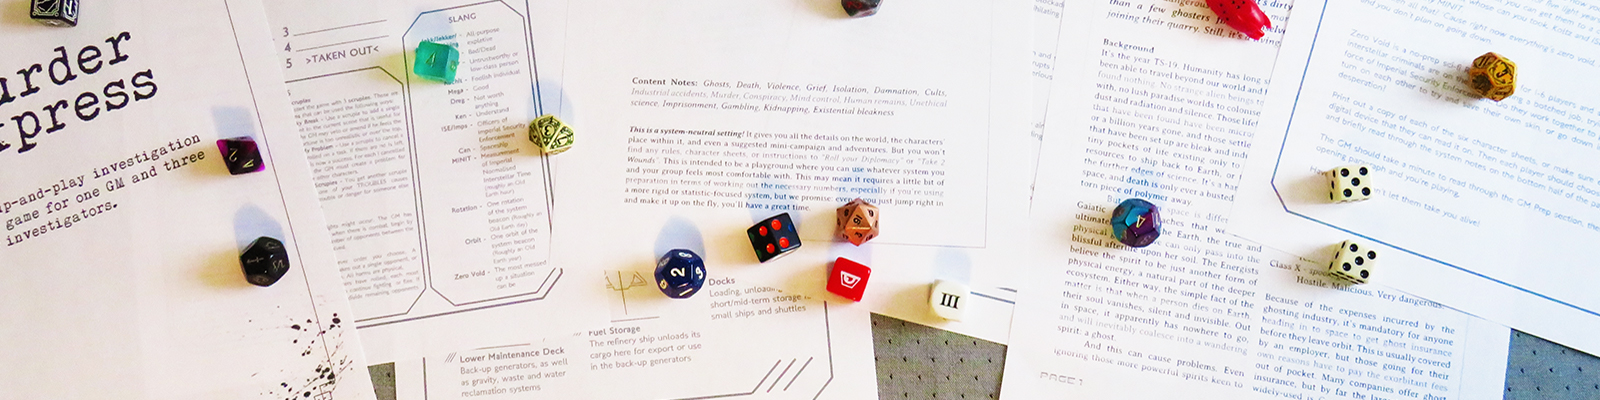 Dice and printed game sheets on a grey background